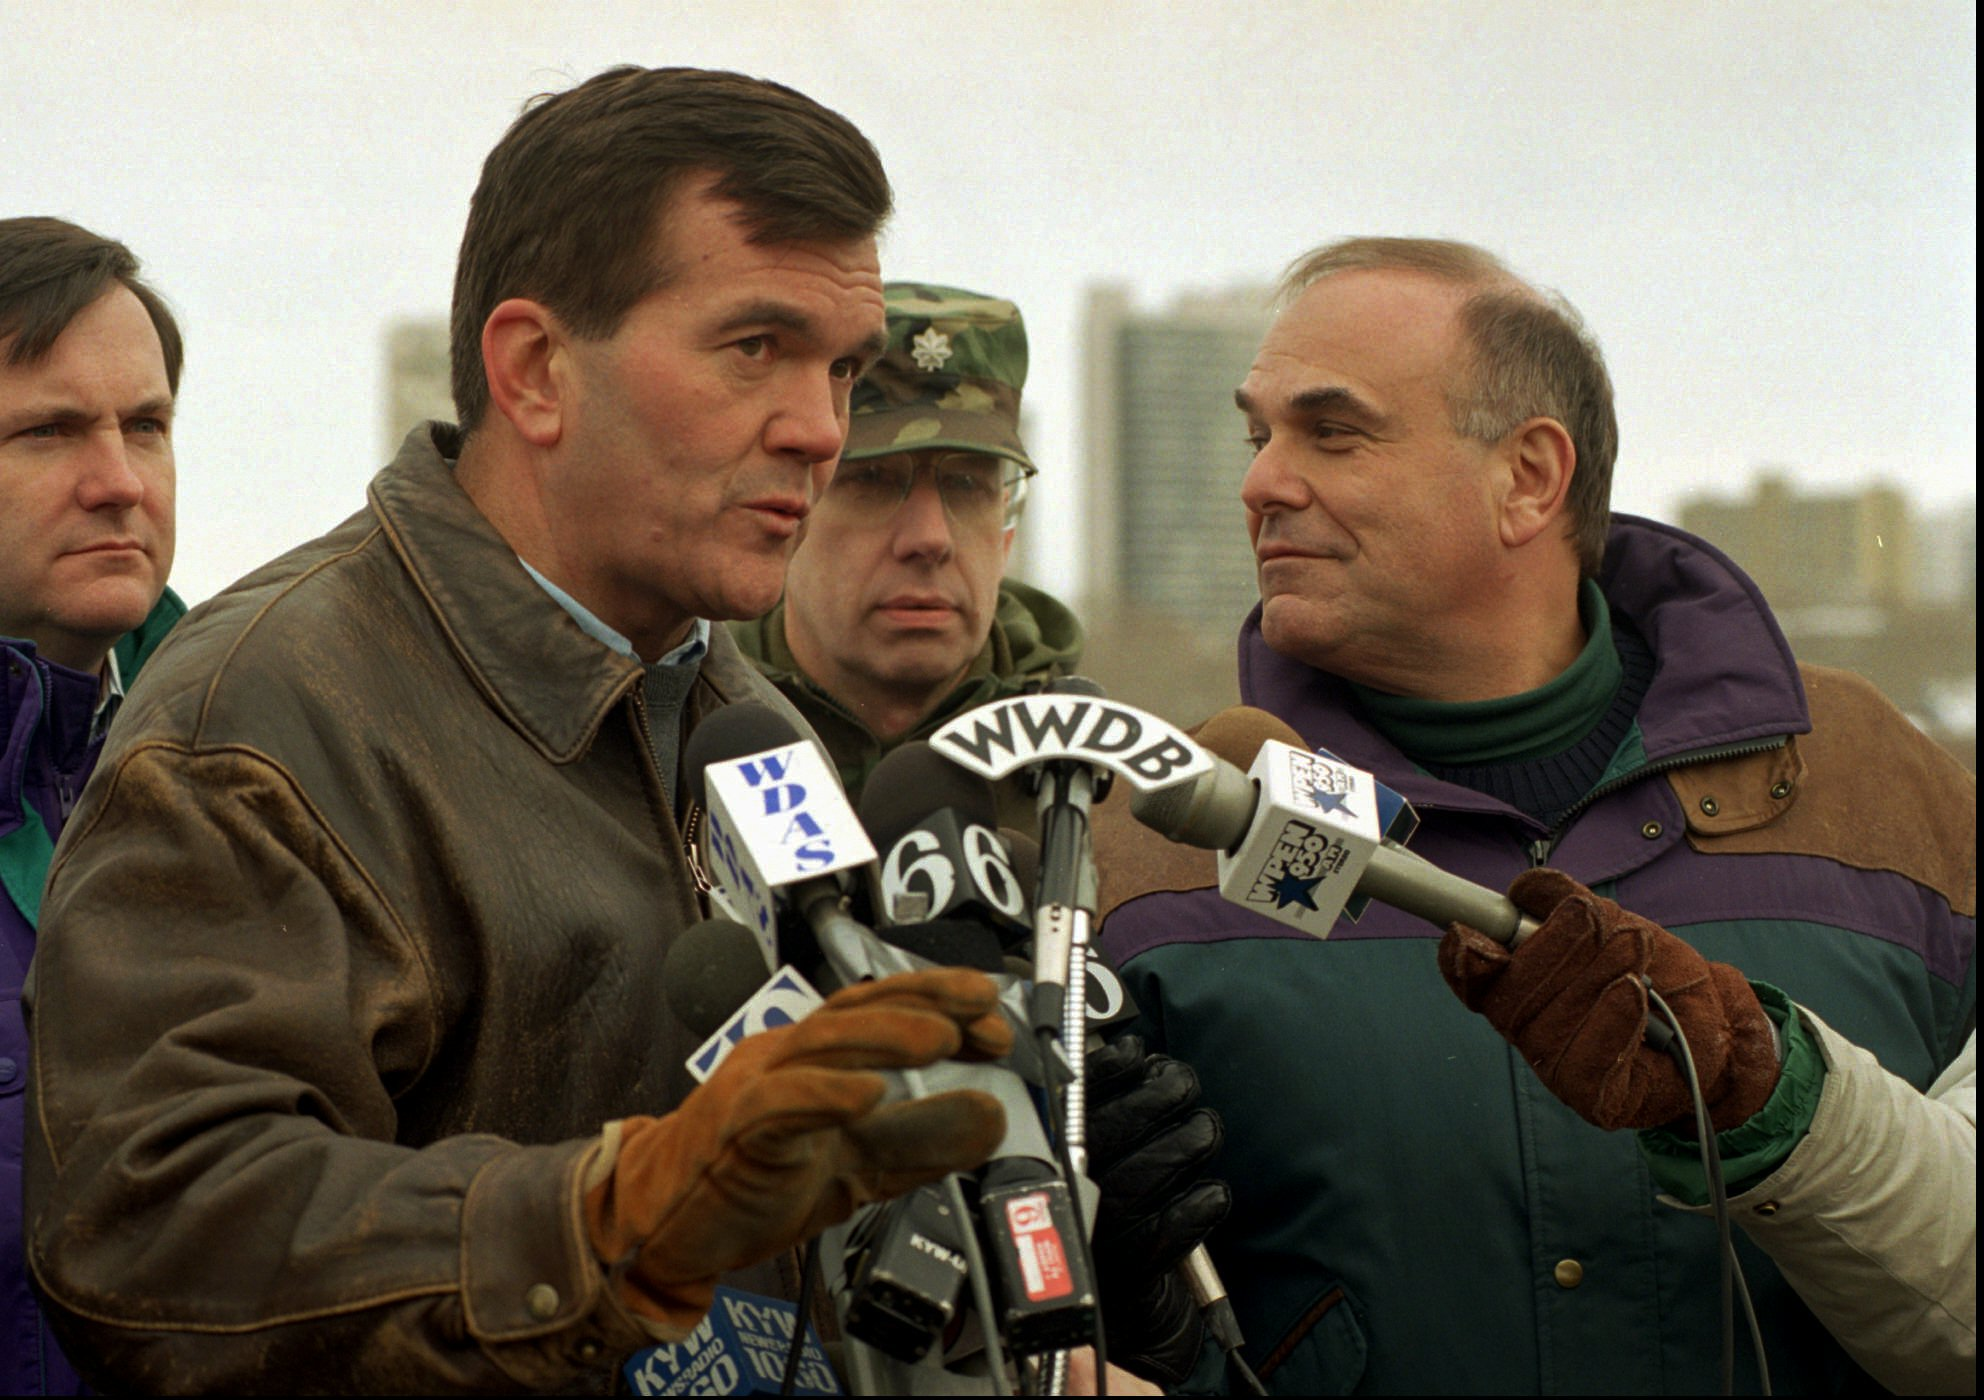 <div class='meta'><div class='origin-logo' data-origin='AP'></div><span class='caption-text' data-credit='ASSOCIATED PRESS'>Pennsylvania Governor Tom Ridge and Philadelphia Mayor Ed Rendell during a 1996 snow storm.</span></div>